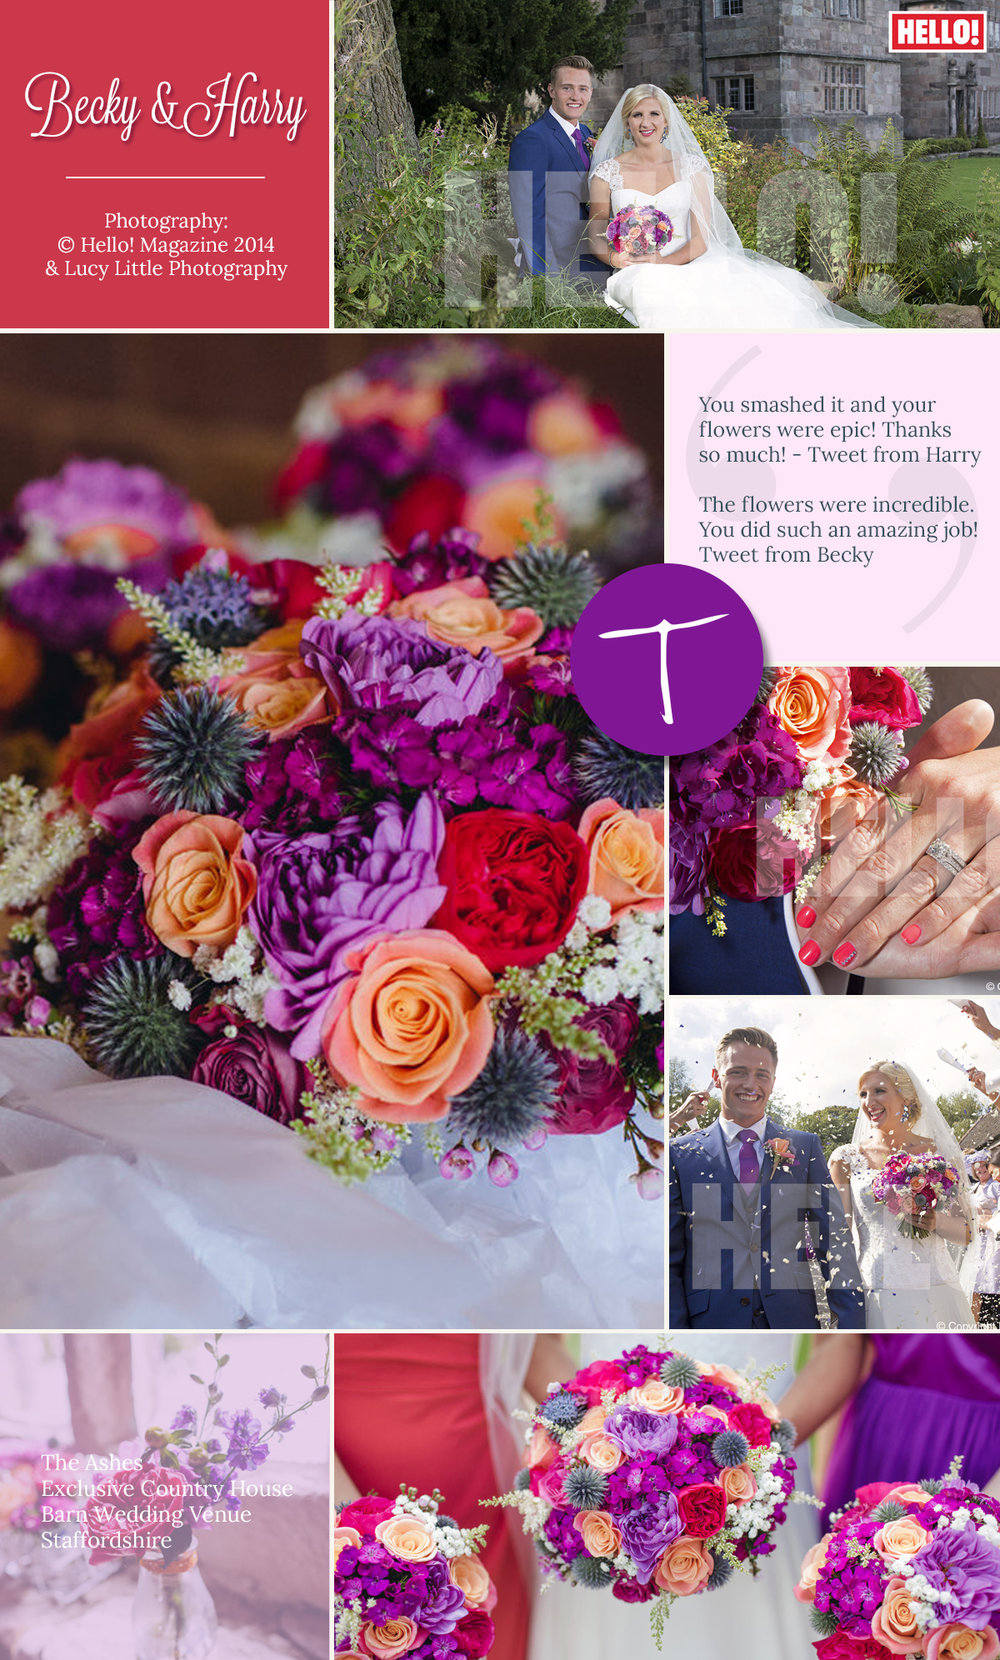 Rebecca Adlington and Harry Needs vibrant wedding flowers by Tineke floral design in Derbyshire.